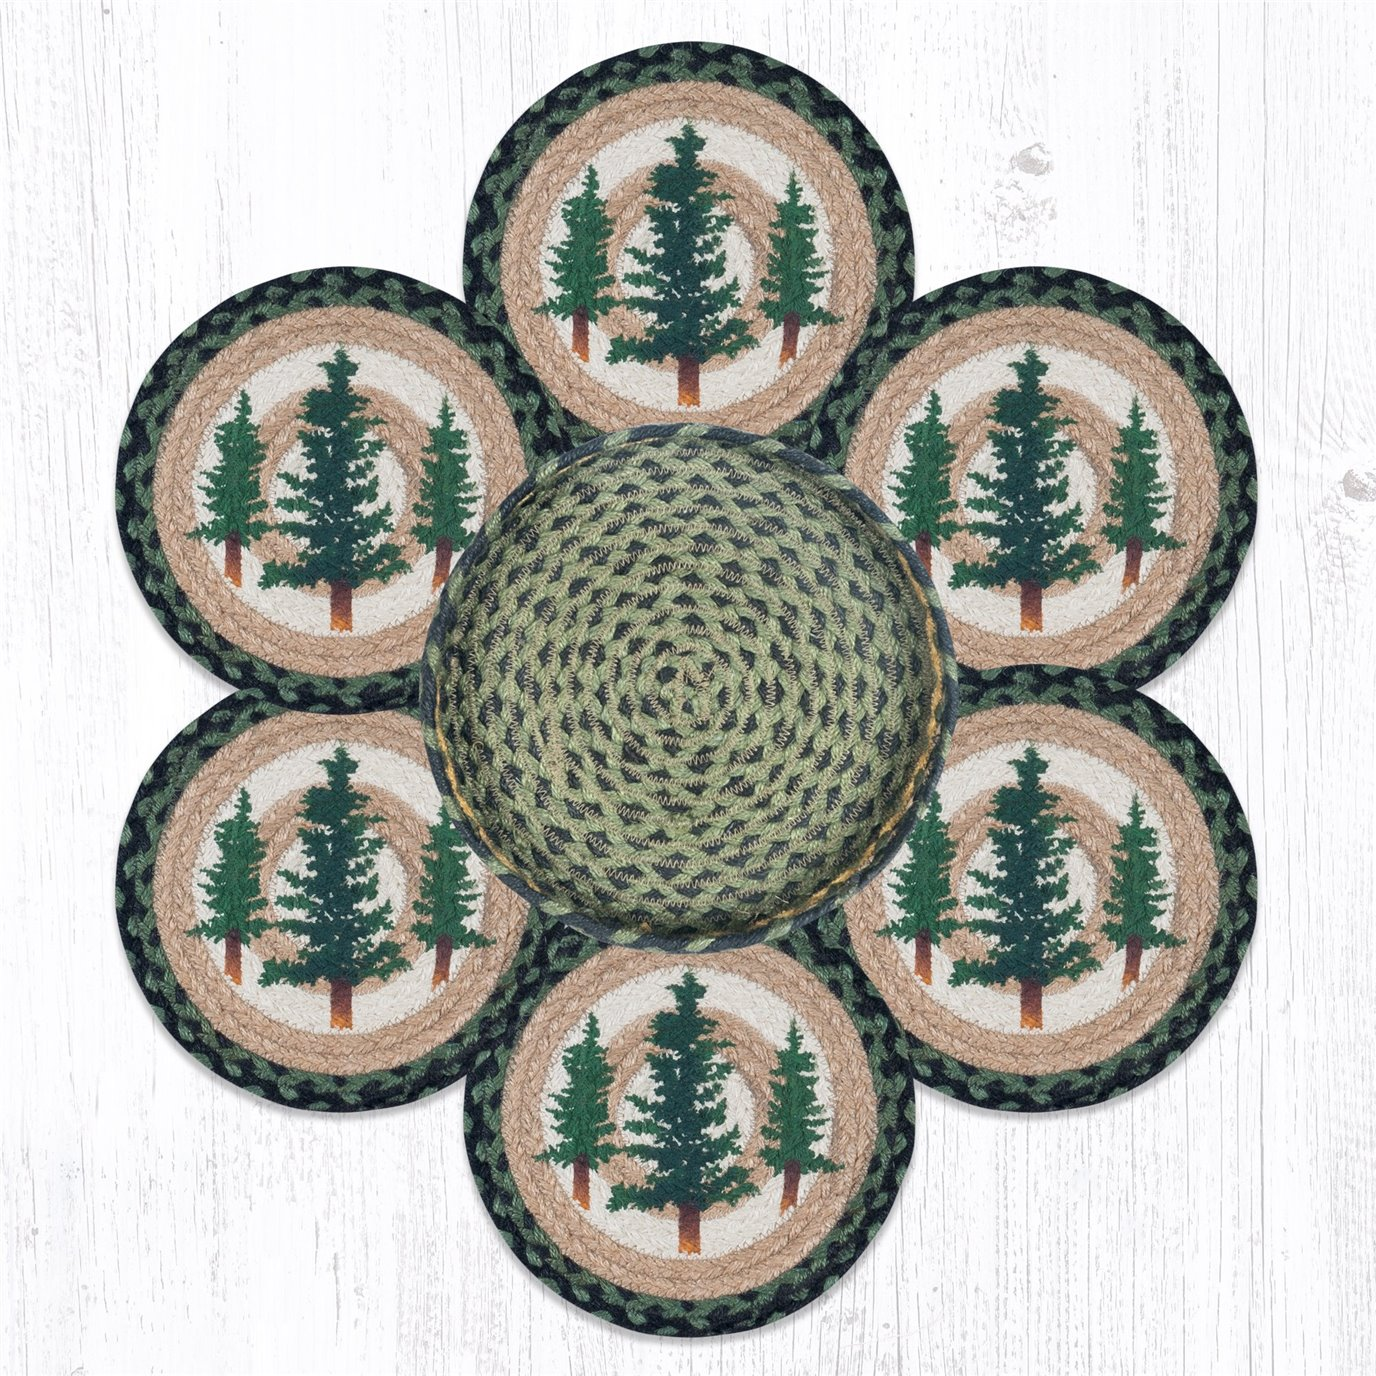 """Tall Timbers Braided Trivets in a Basket 10""""x10"""", Set of 6"""